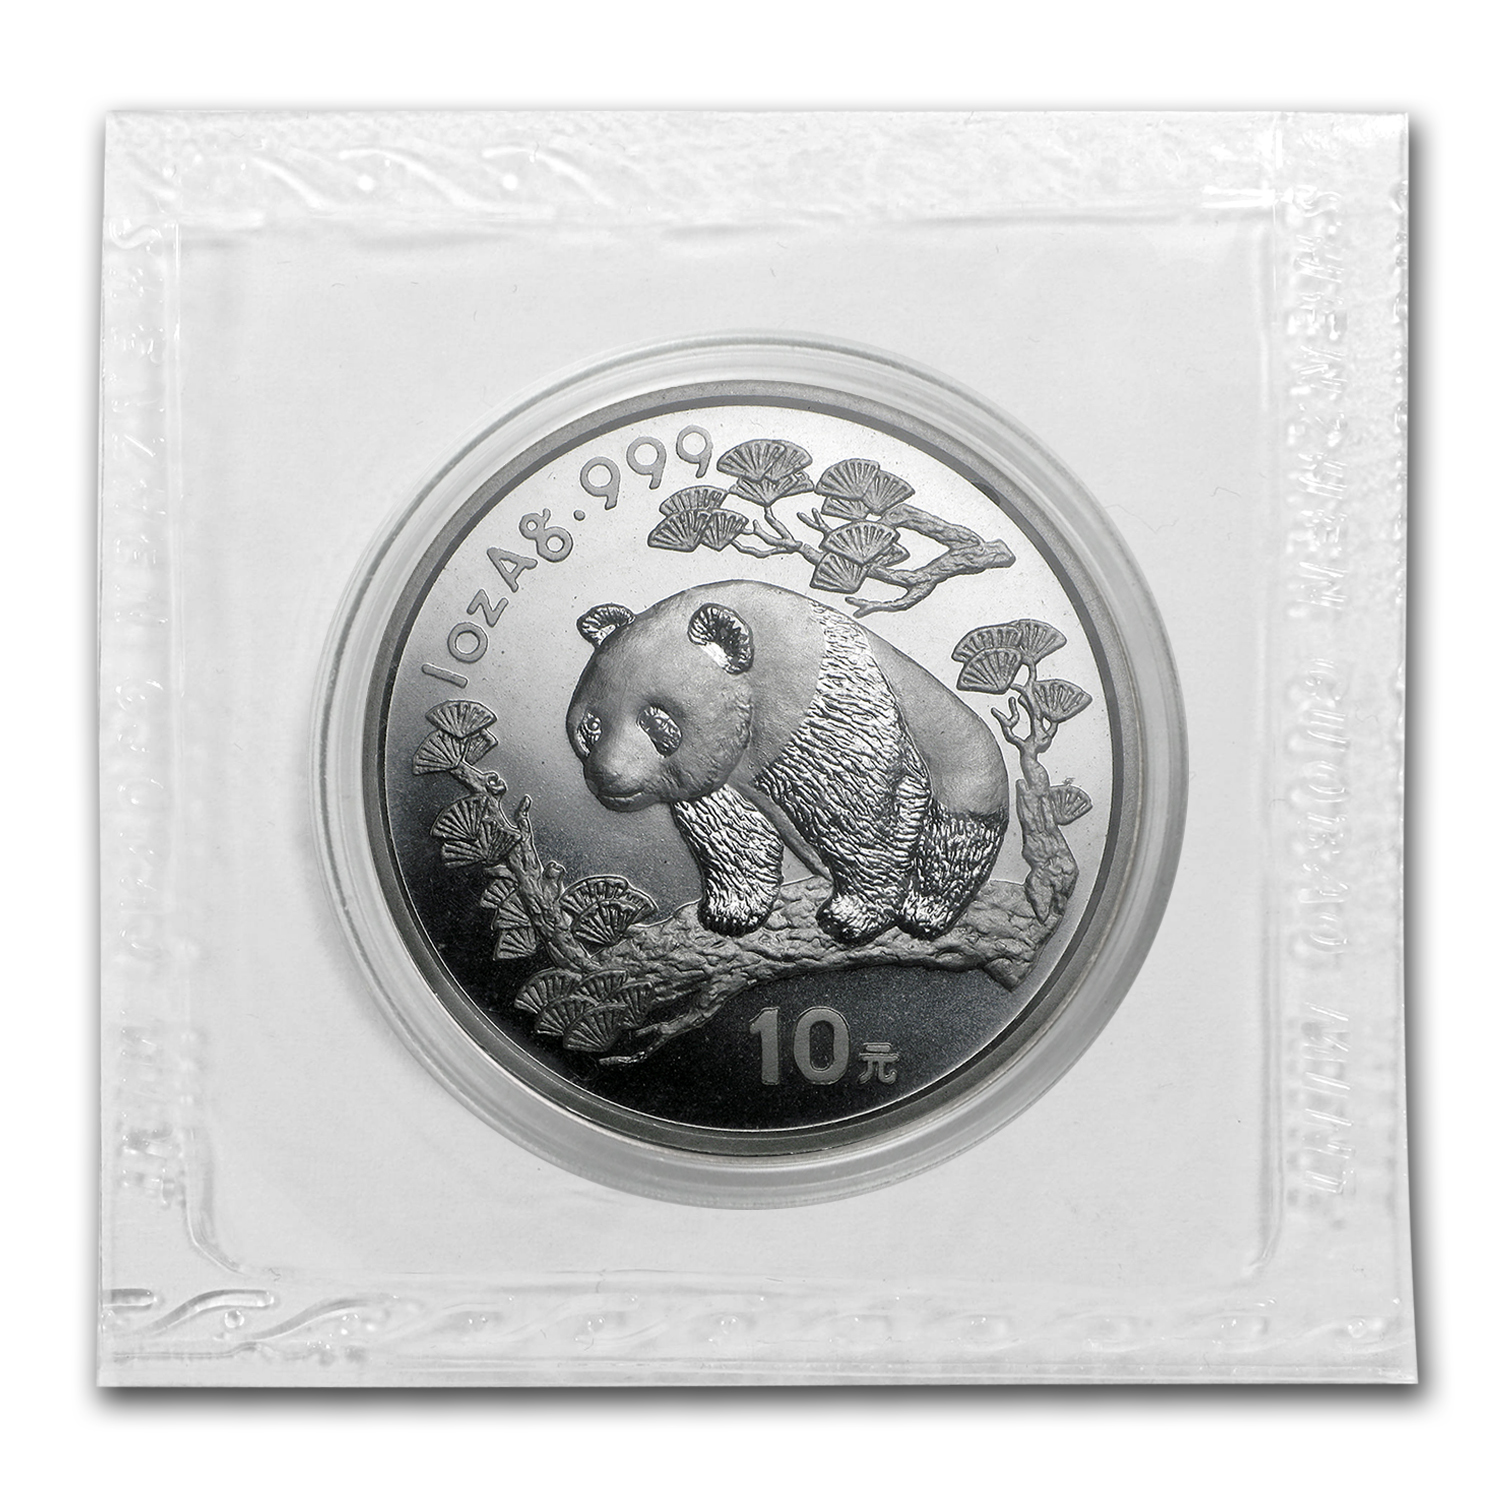 1997 China 1 oz Silver Panda Large Date BU (Sealed)